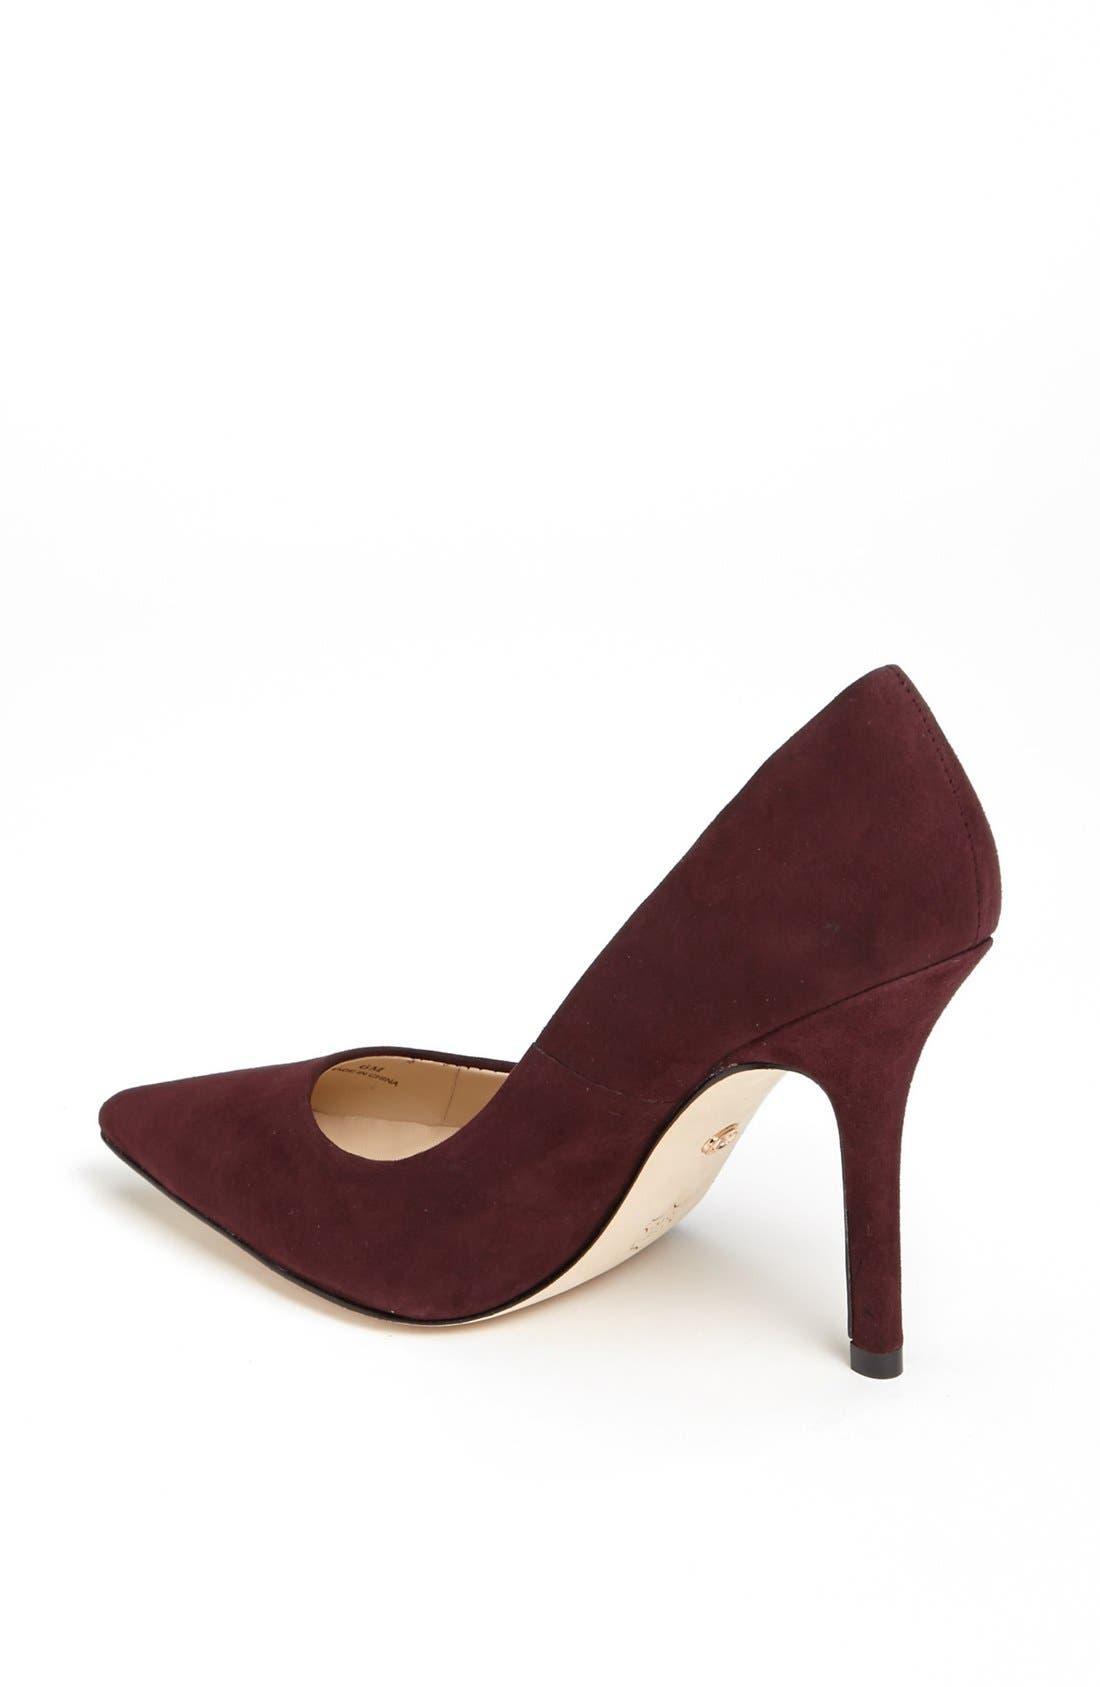 Alternate Image 3  - Charles David 'Sway II' Suede Pump